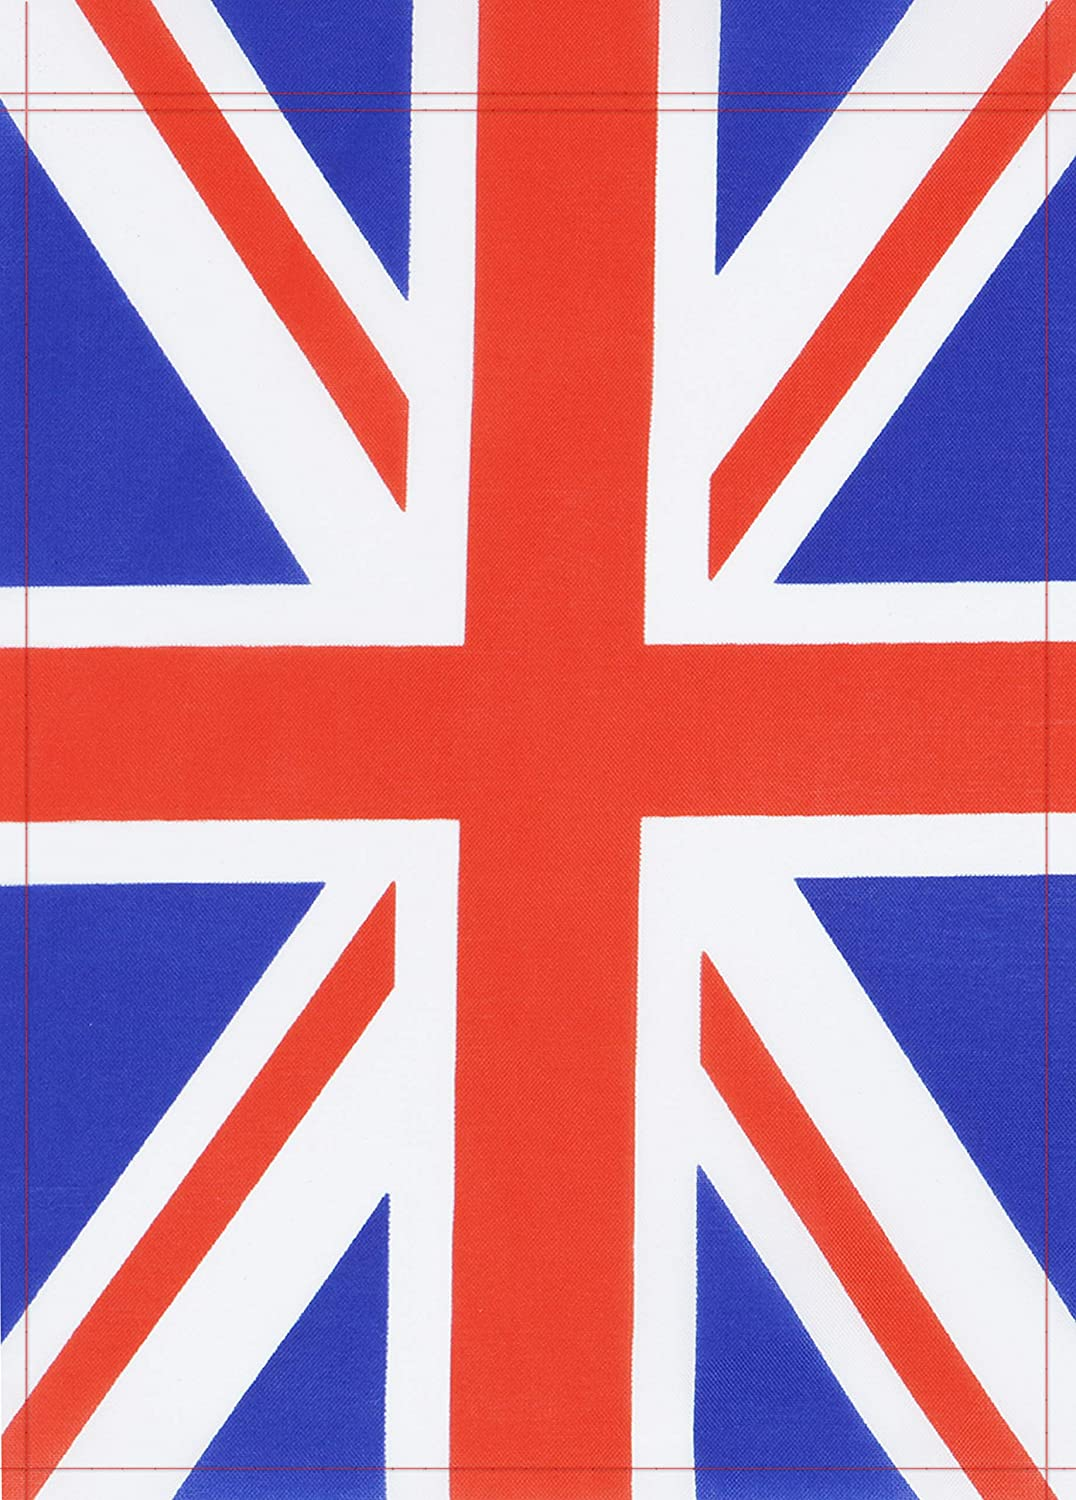 Kind Girl 2 Pack UK British Garden Flag,Indoor Outdoor Decoration Flags,Home, Garden, Office Decorations,Double-Sided Flags,DIY Celebration Holiday Decoration.